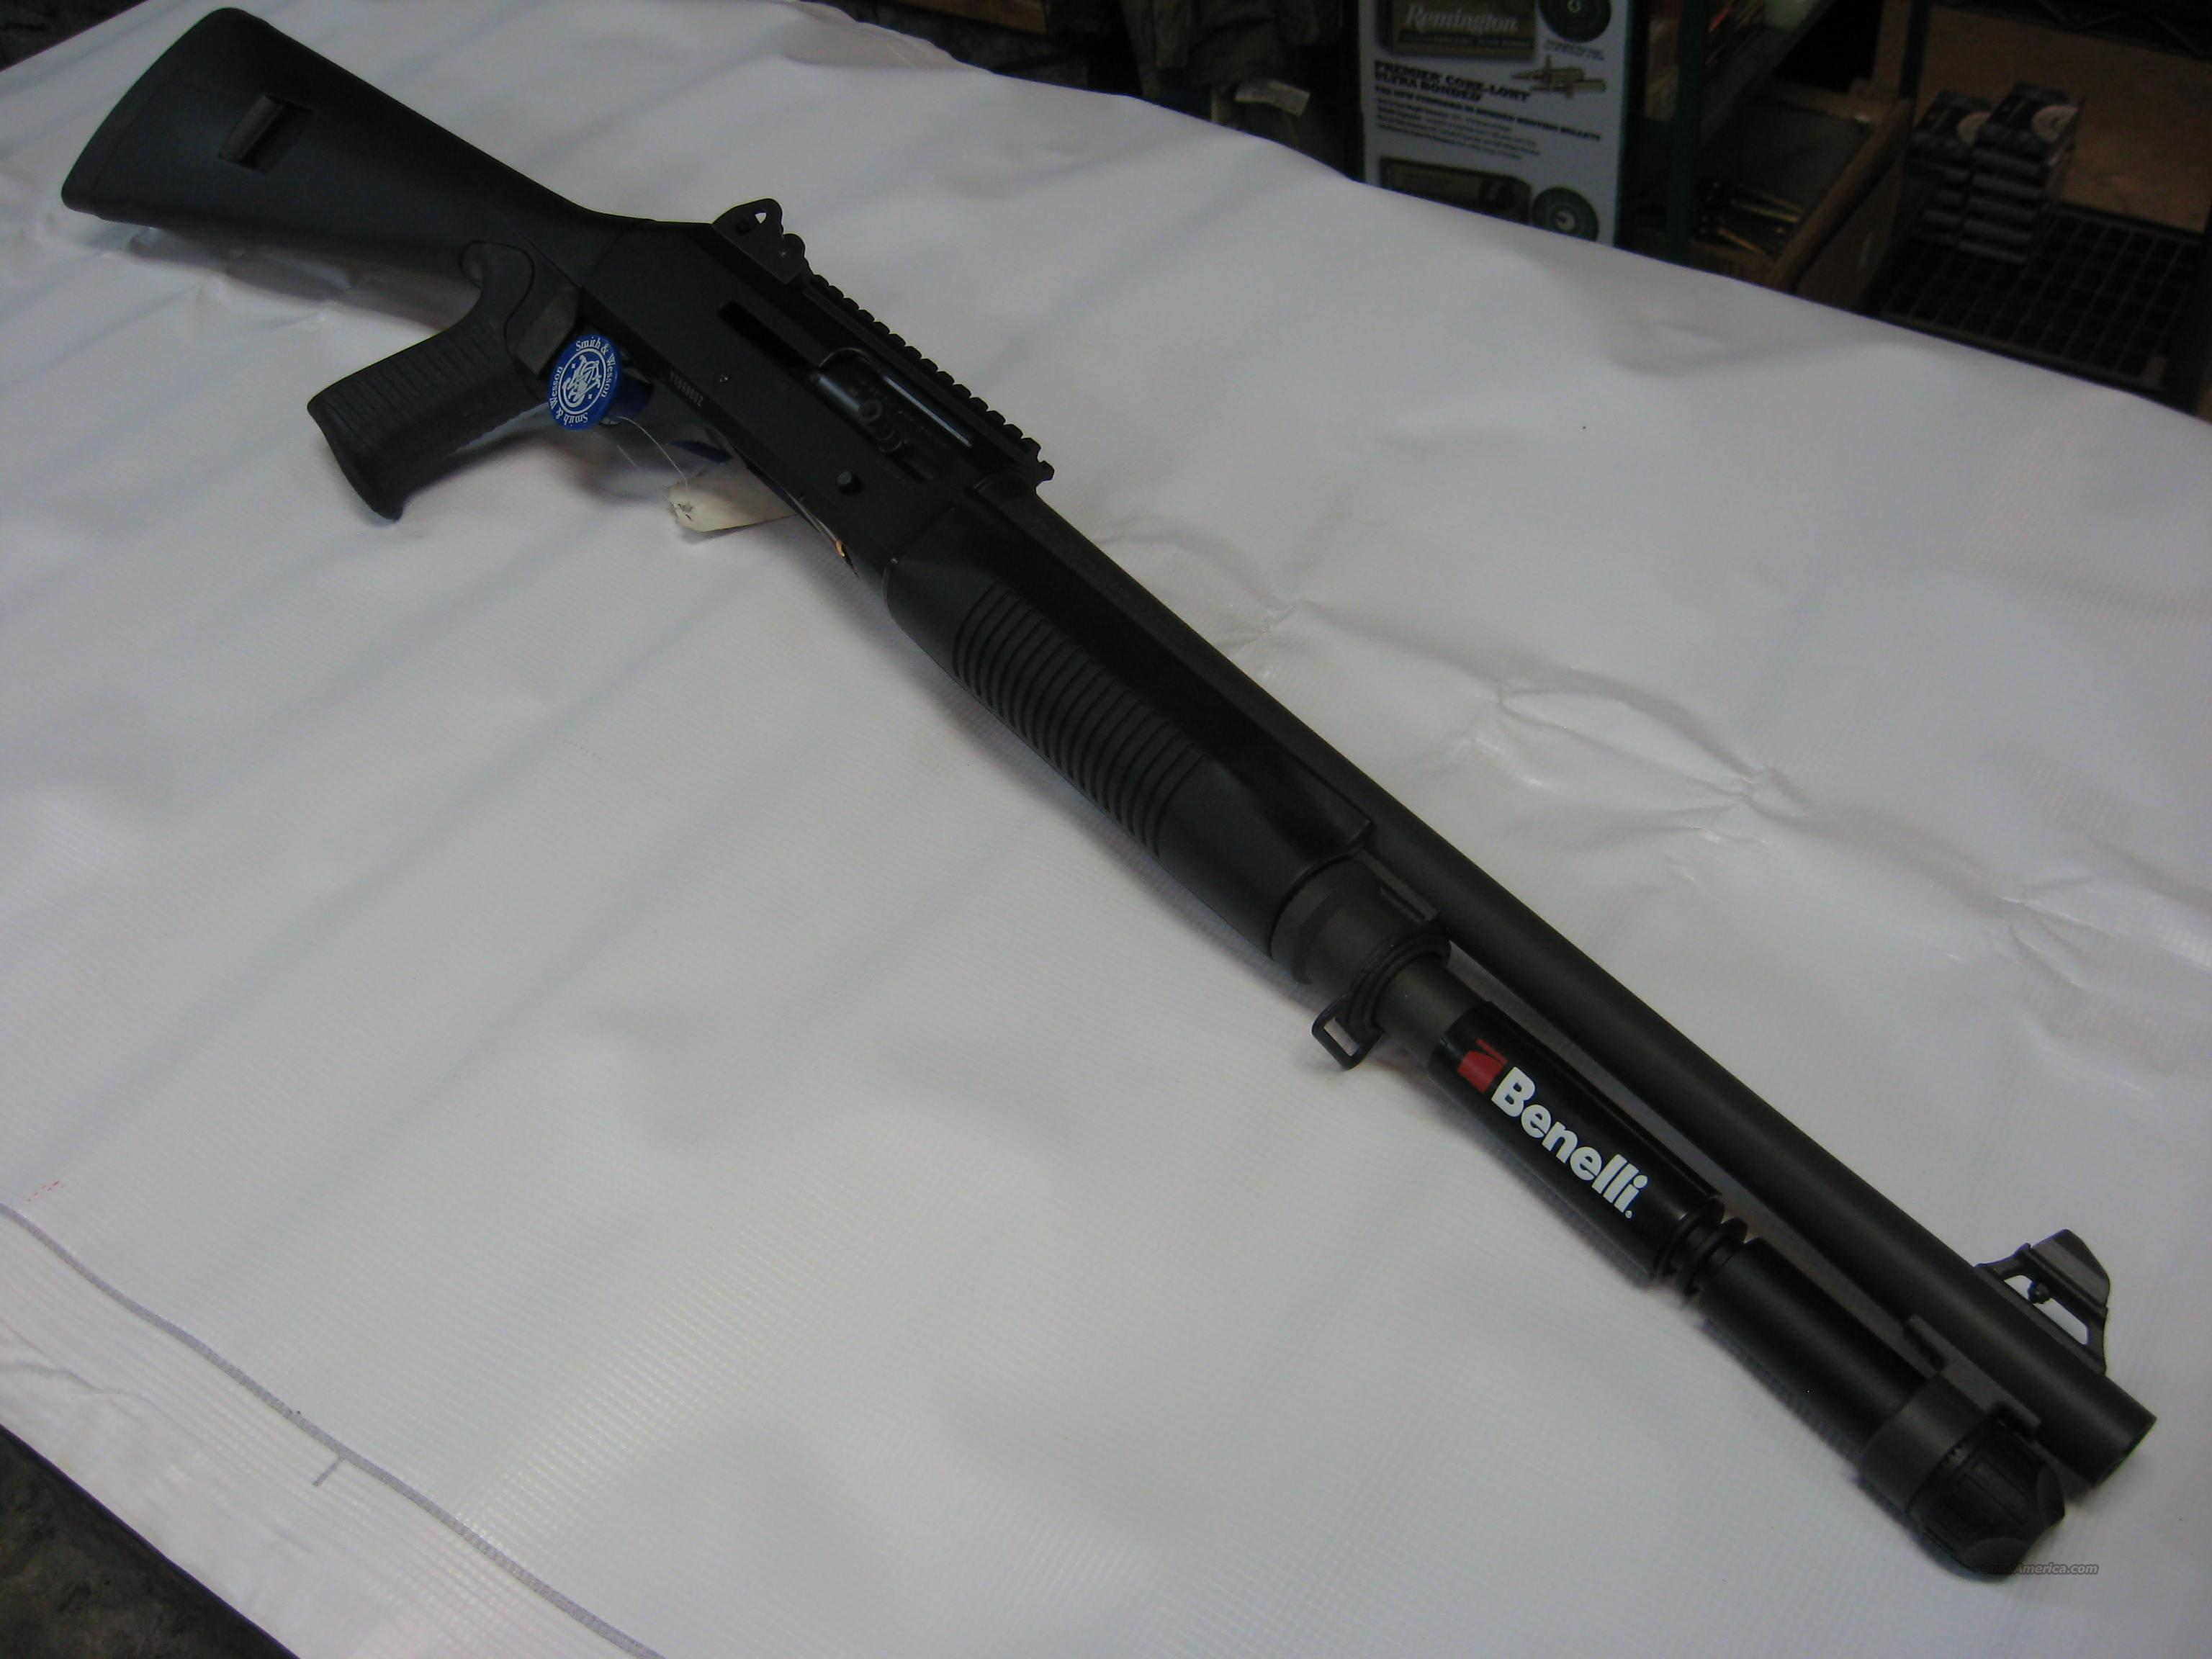 BENELLI M4 TACTICAL 12 GA  Guns > Shotguns > Benelli Shotguns > Tactical